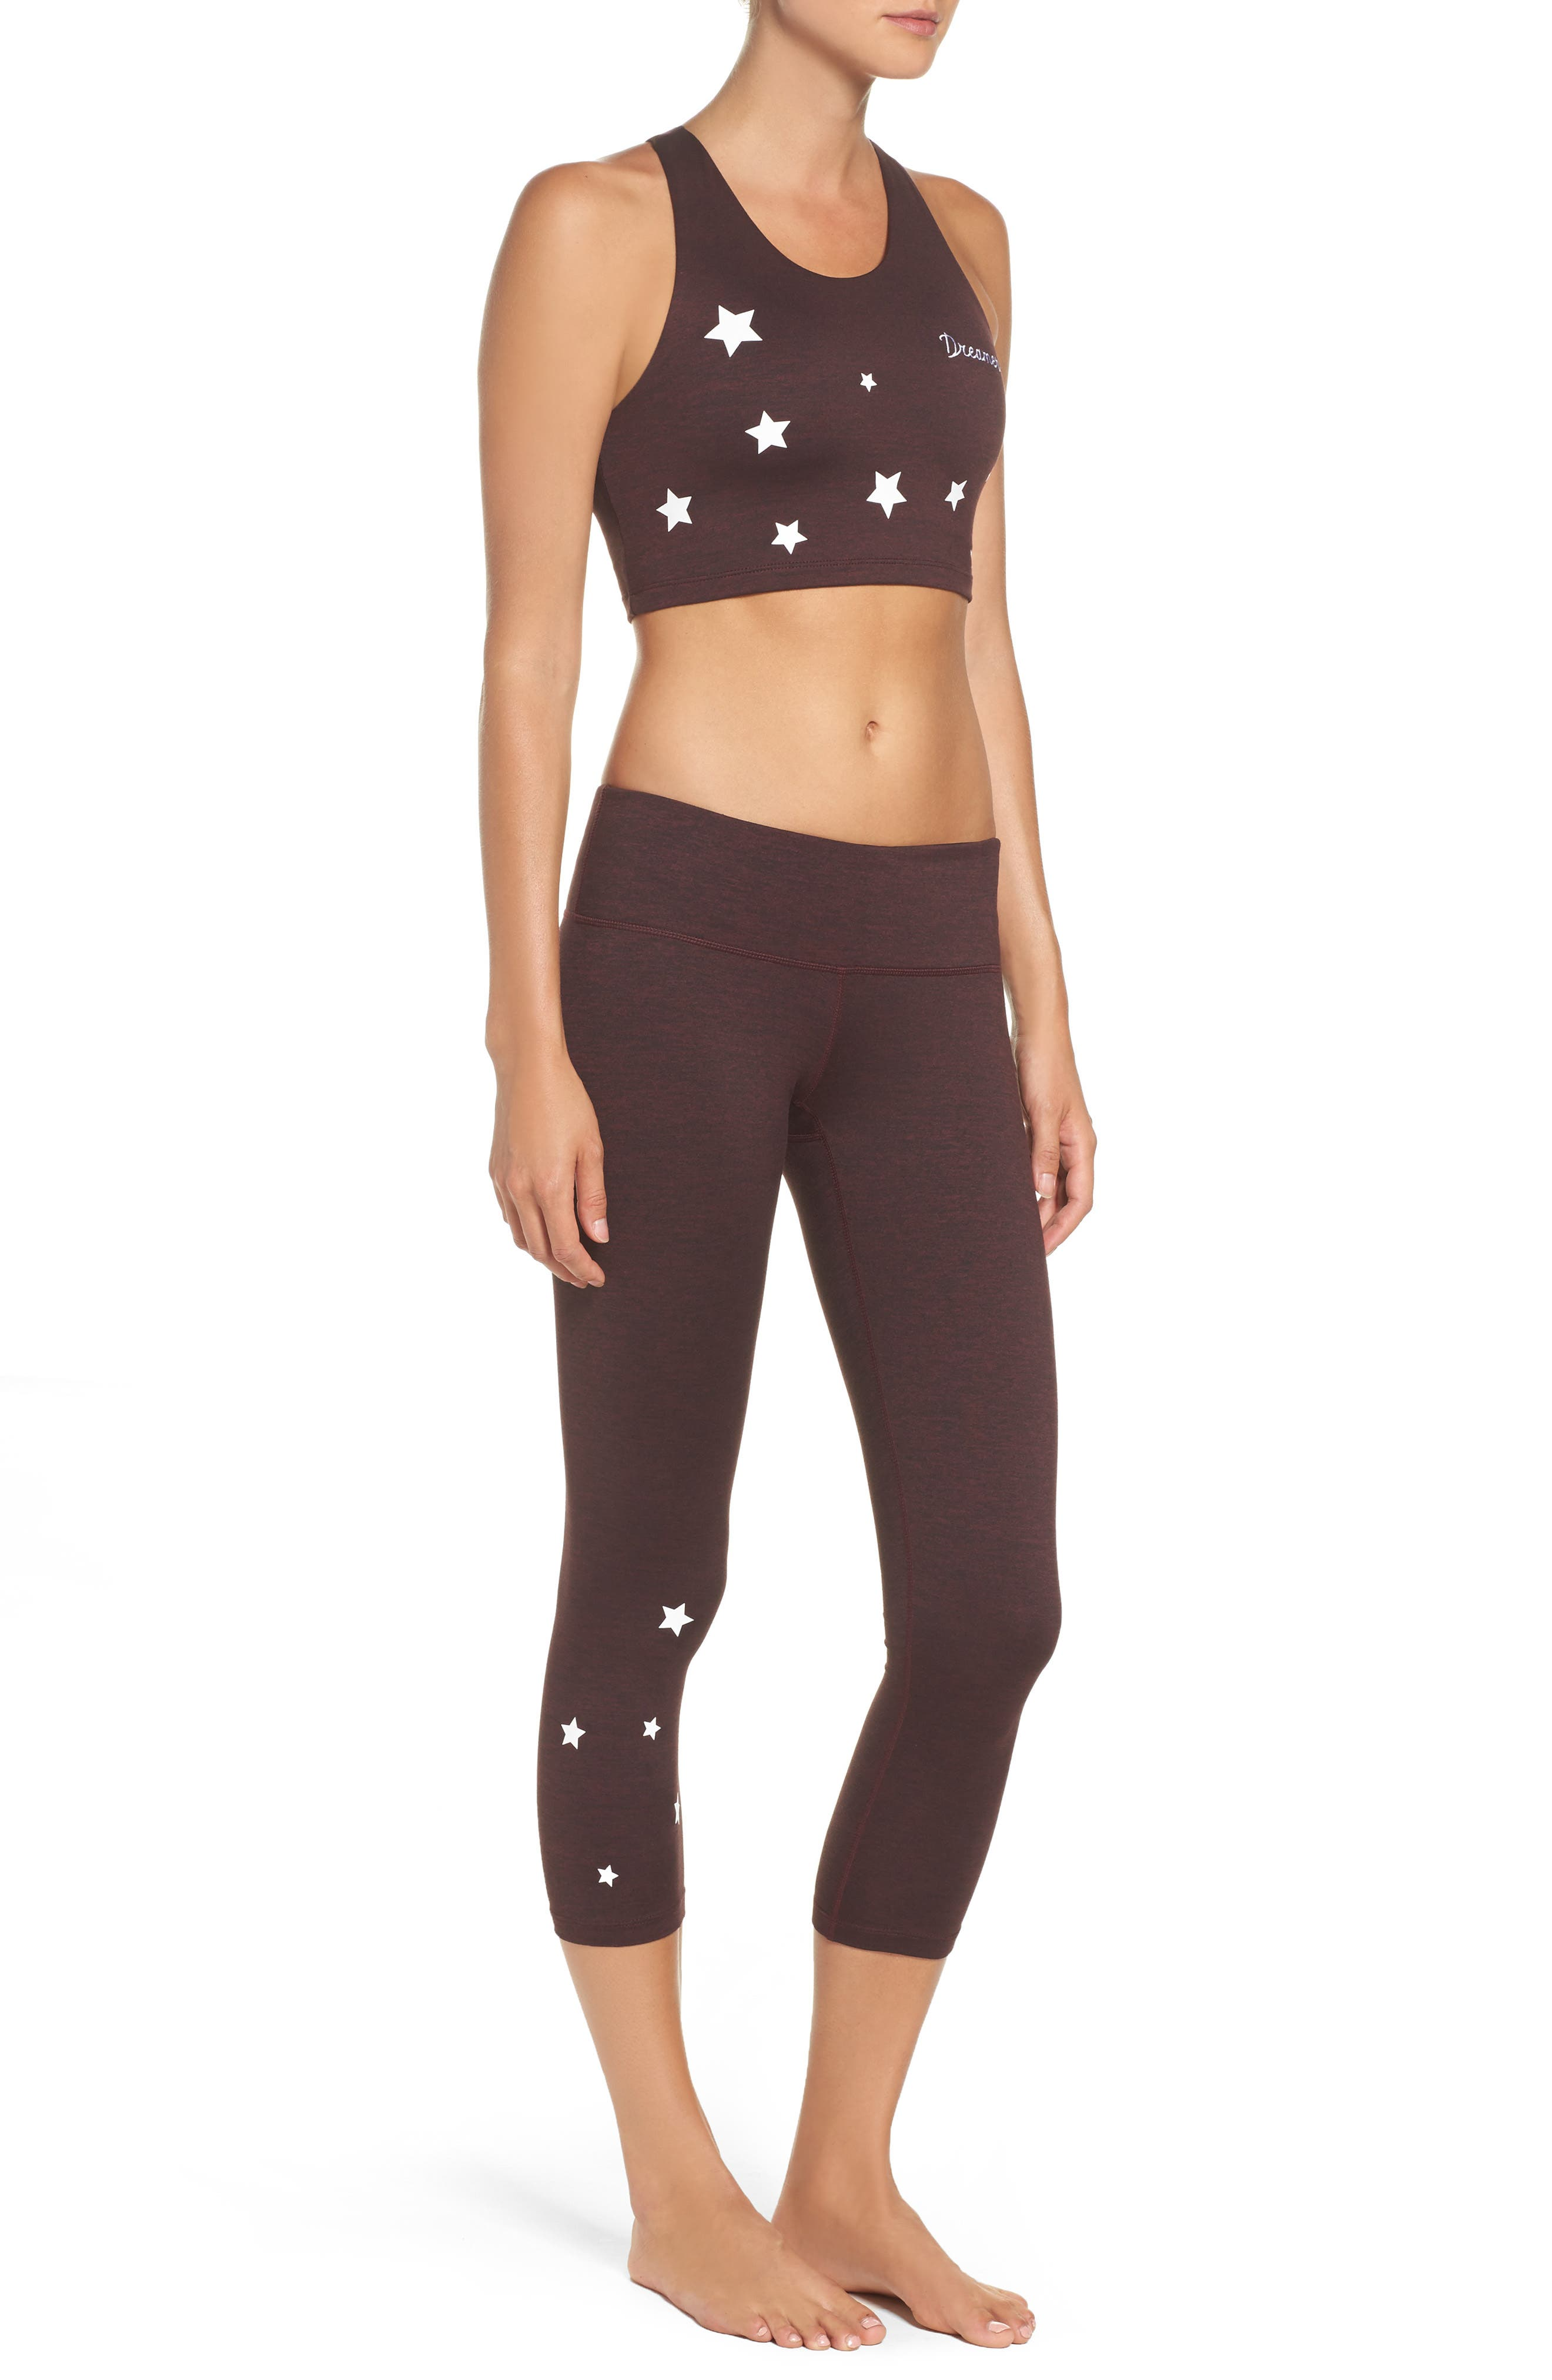 Stars Power Crop Leggings,                             Alternate thumbnail 10, color,                             602